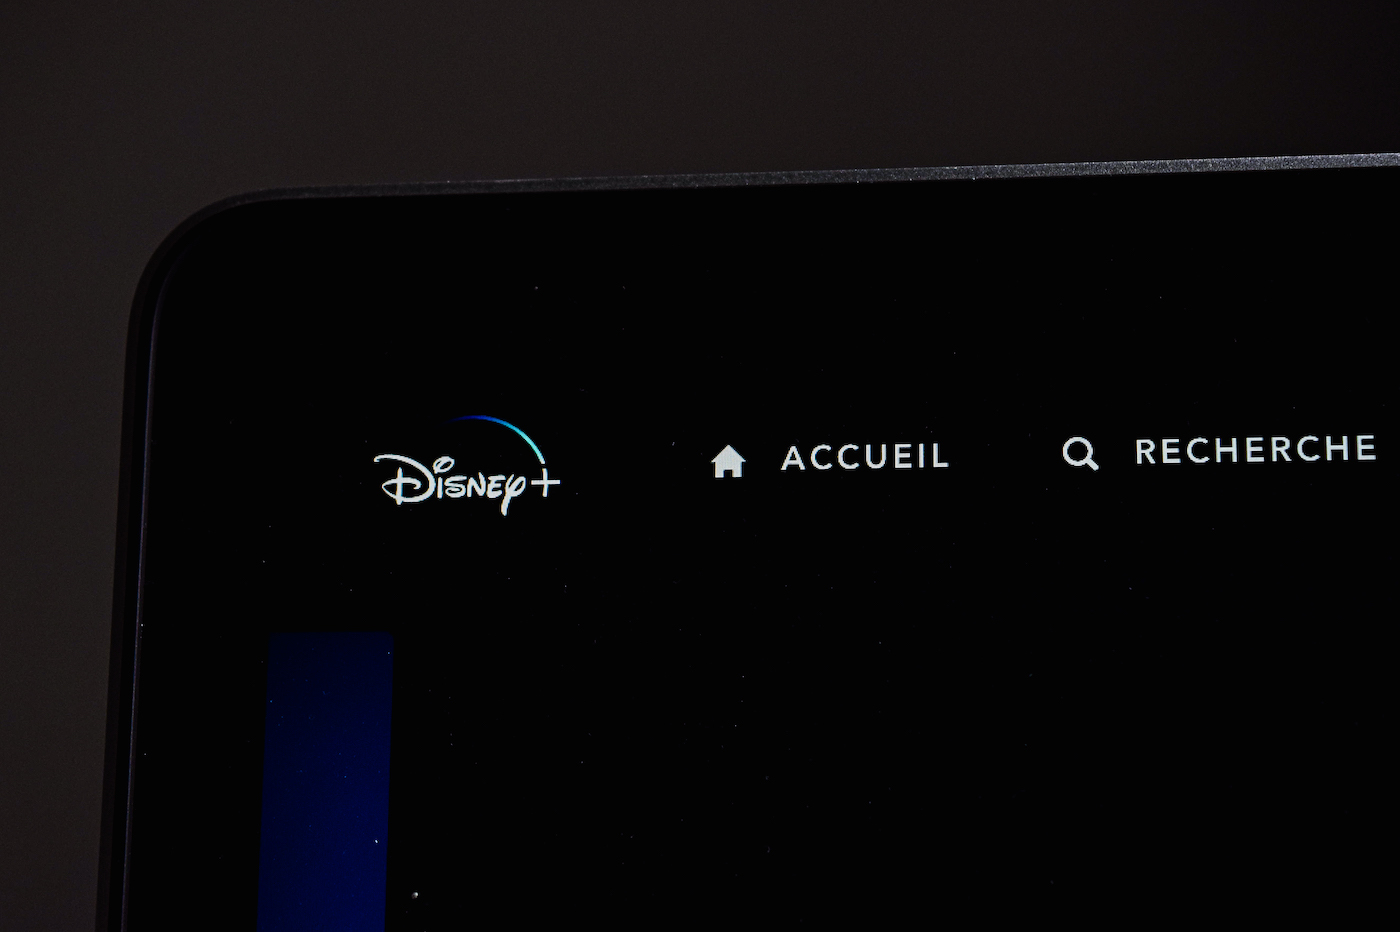 Disney+ recule son lancement en France